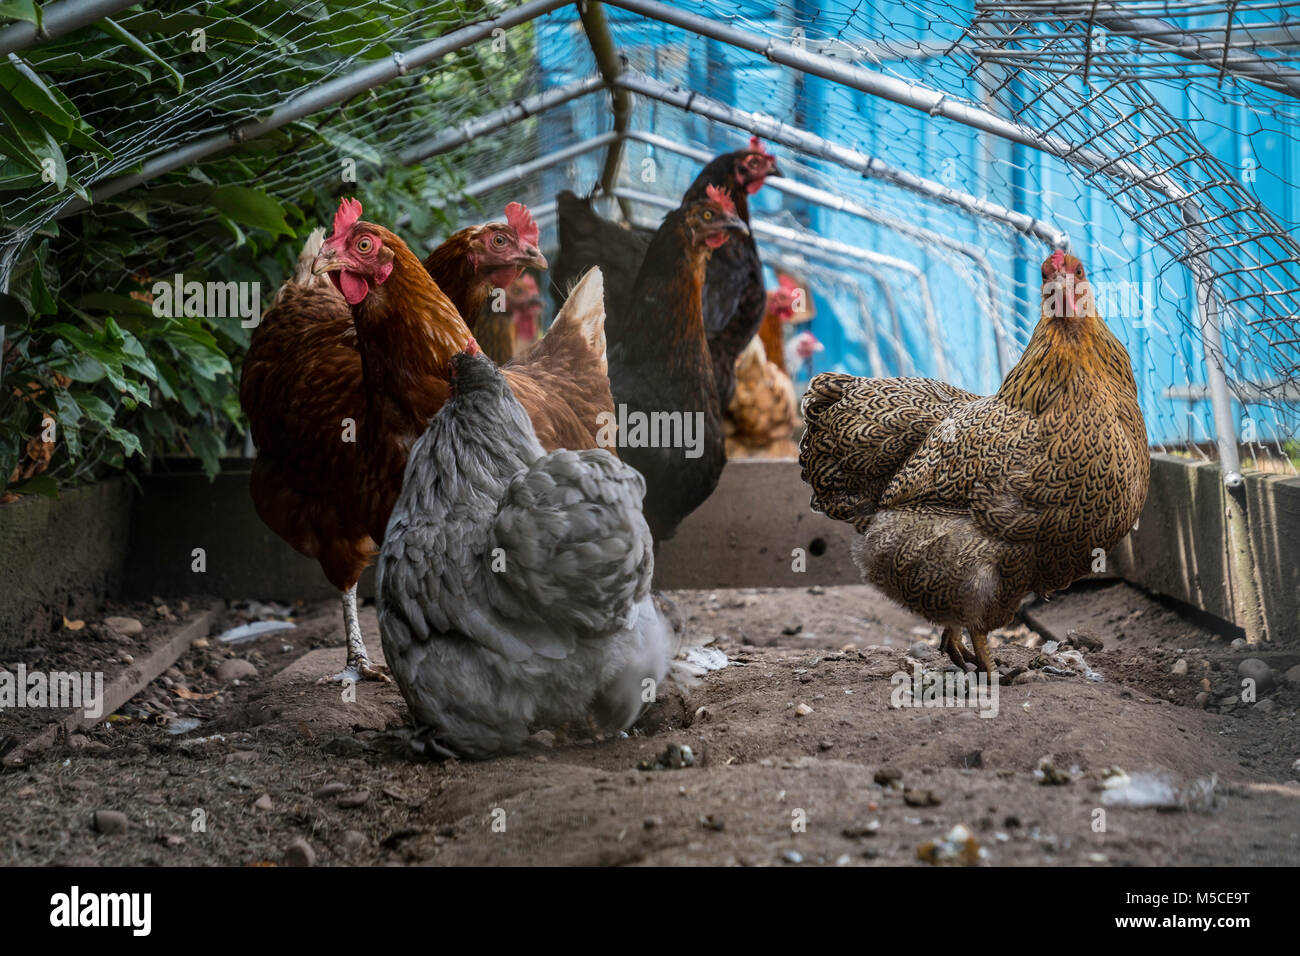 A variety of chicken breeds in a run. - Stock Image